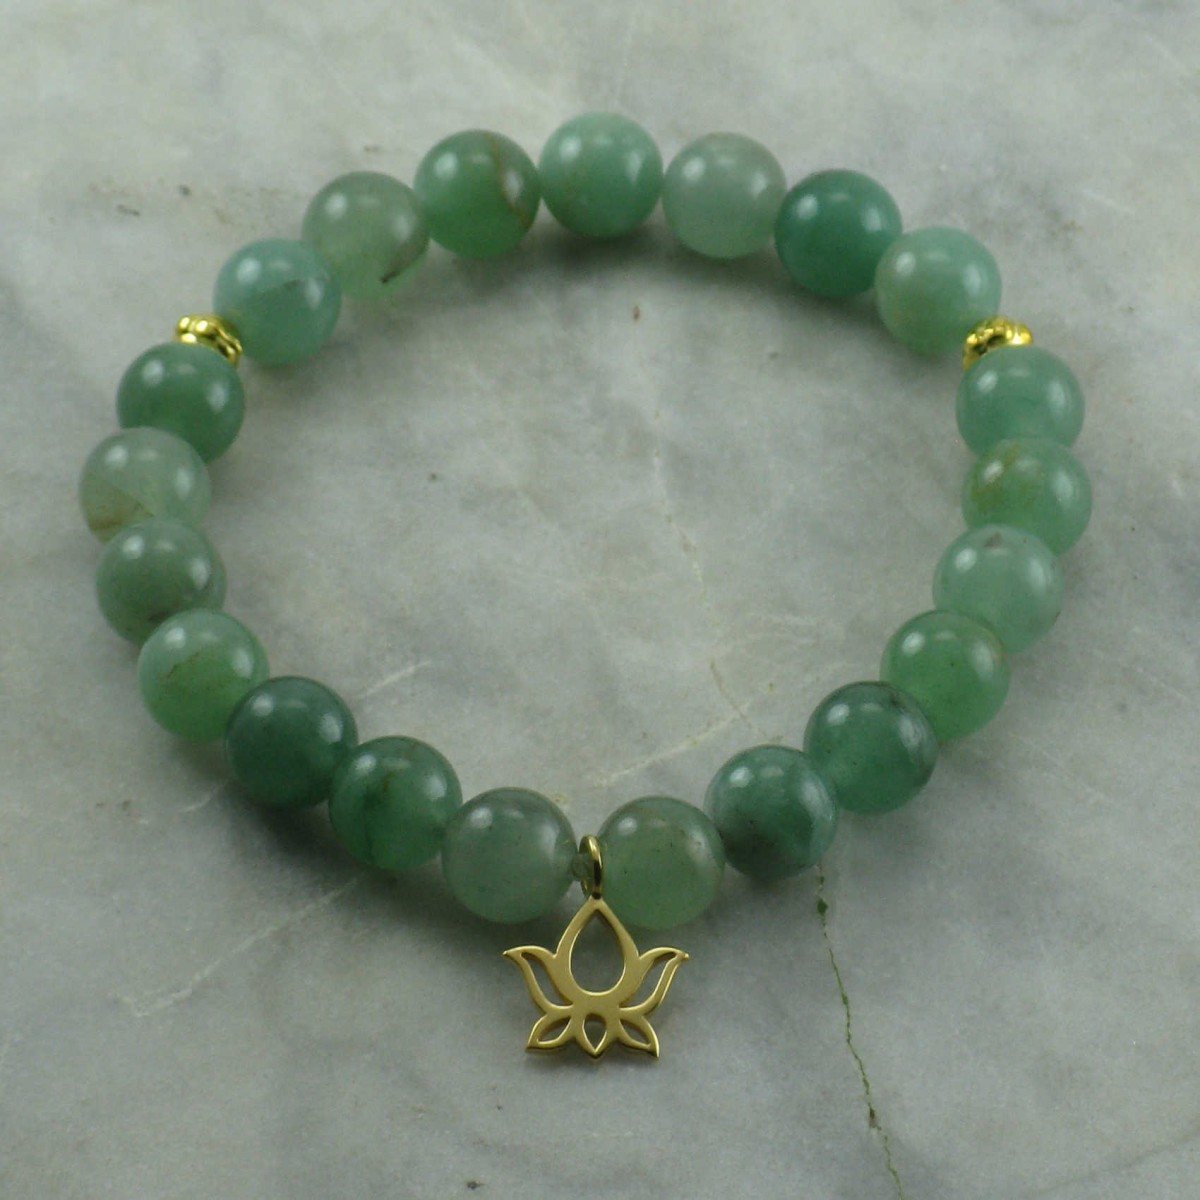 Prosperity_Mala_Bracelet_21_Green_Aventurine_Mala_Beads_1700